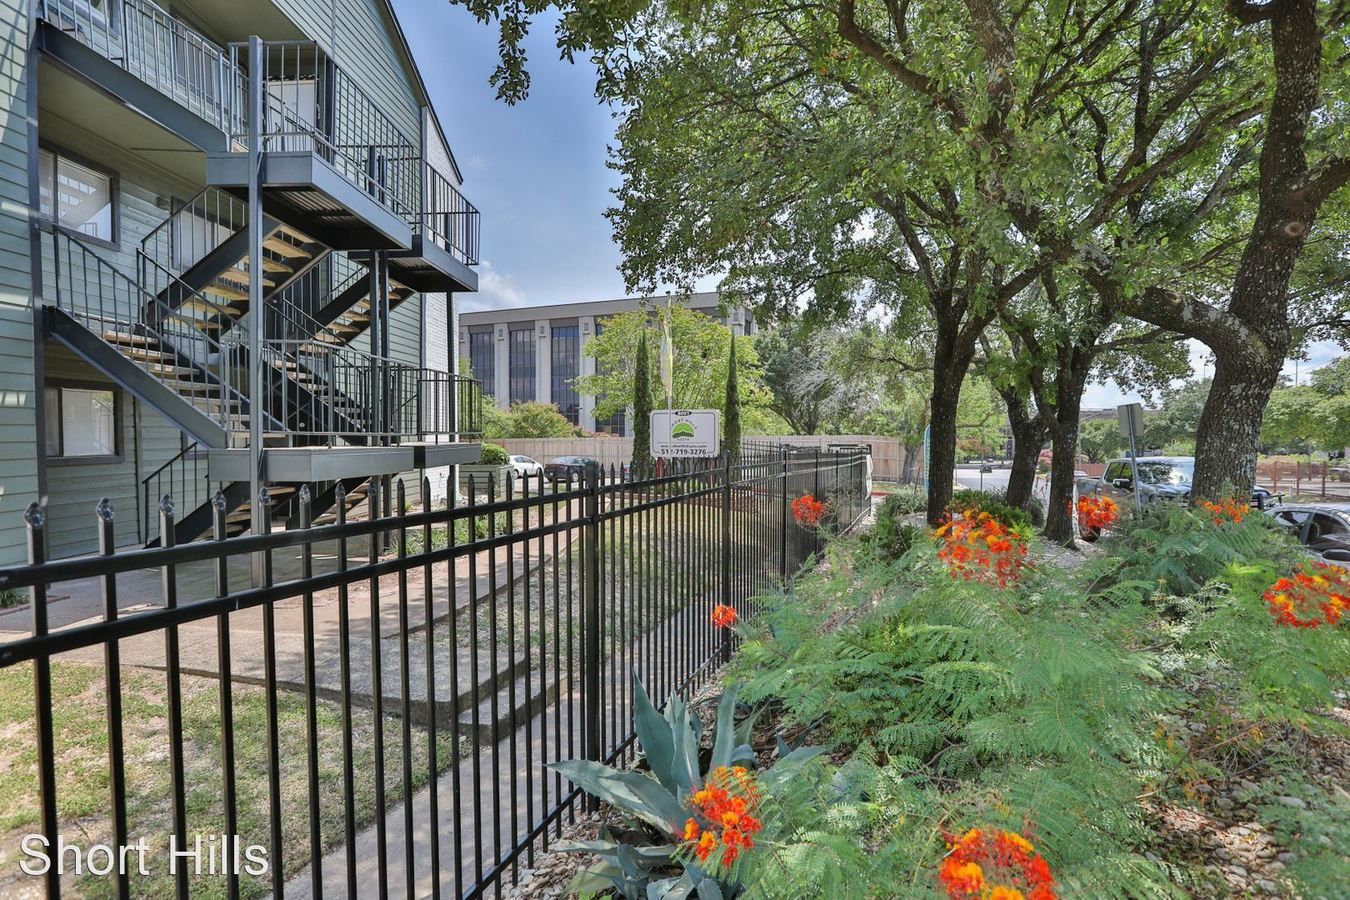 2 Bedrooms 2 Bathrooms Apartment for rent at Short Hills South in Austin, TX